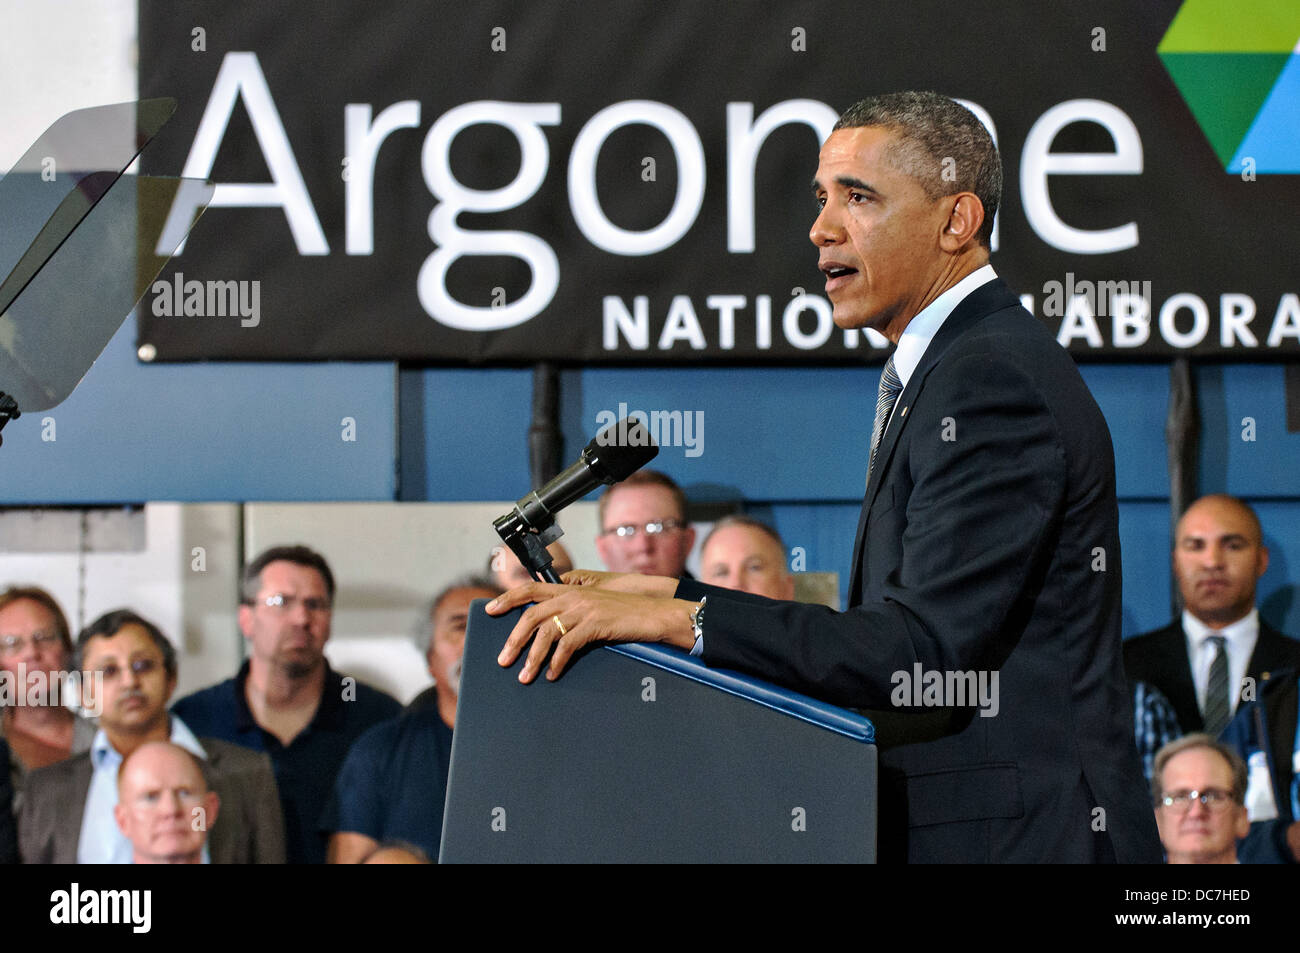 US President Barack Obama speaks on energy policies during a visit to the Argonne National Laboratory March 15, - Stock Image